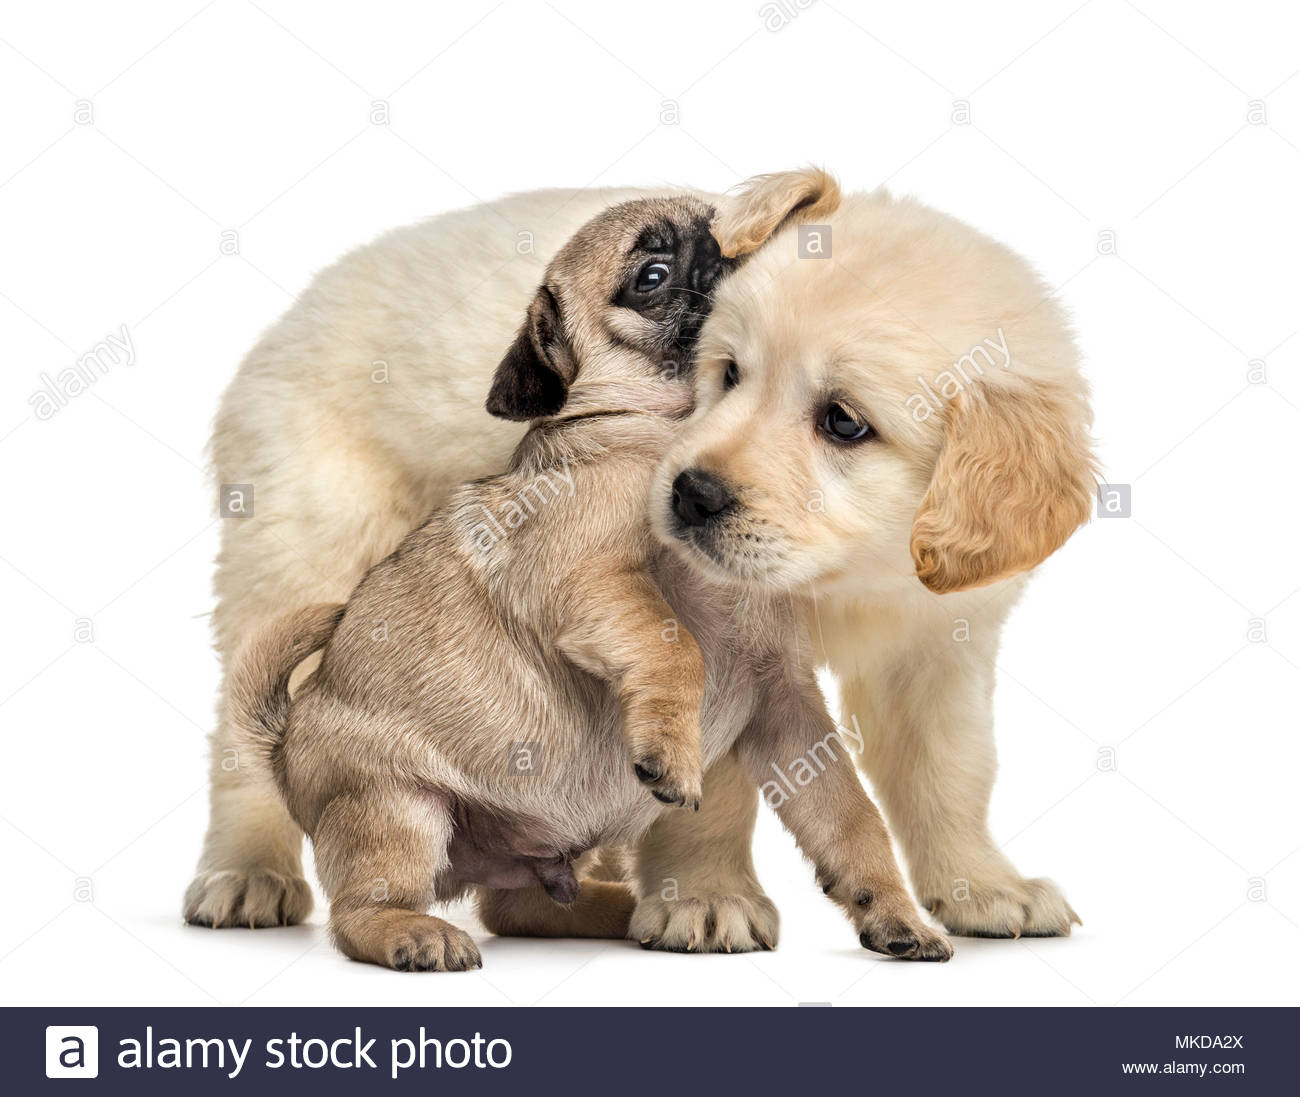 Retriever and pug puppies playing together, isolated on white background - Stock Image